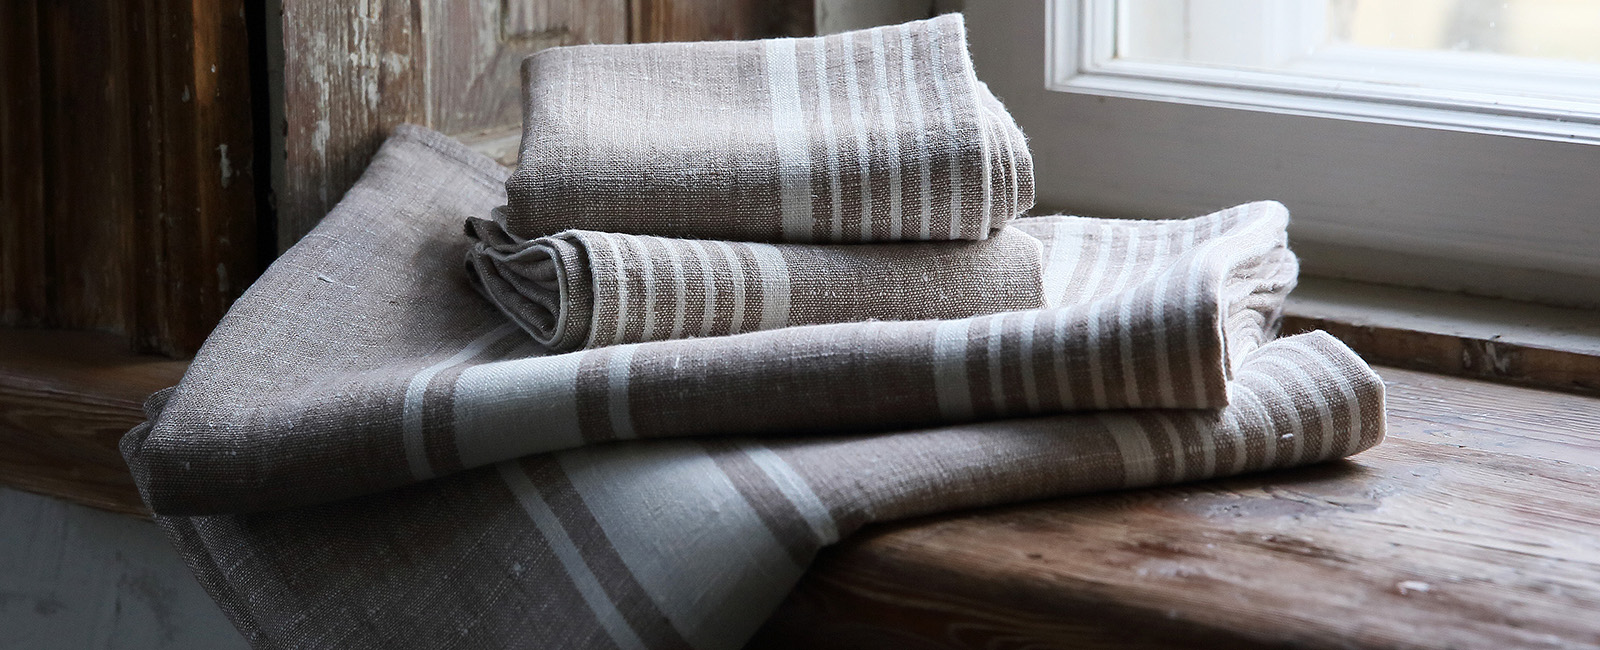 Linomeda – We are linen experts